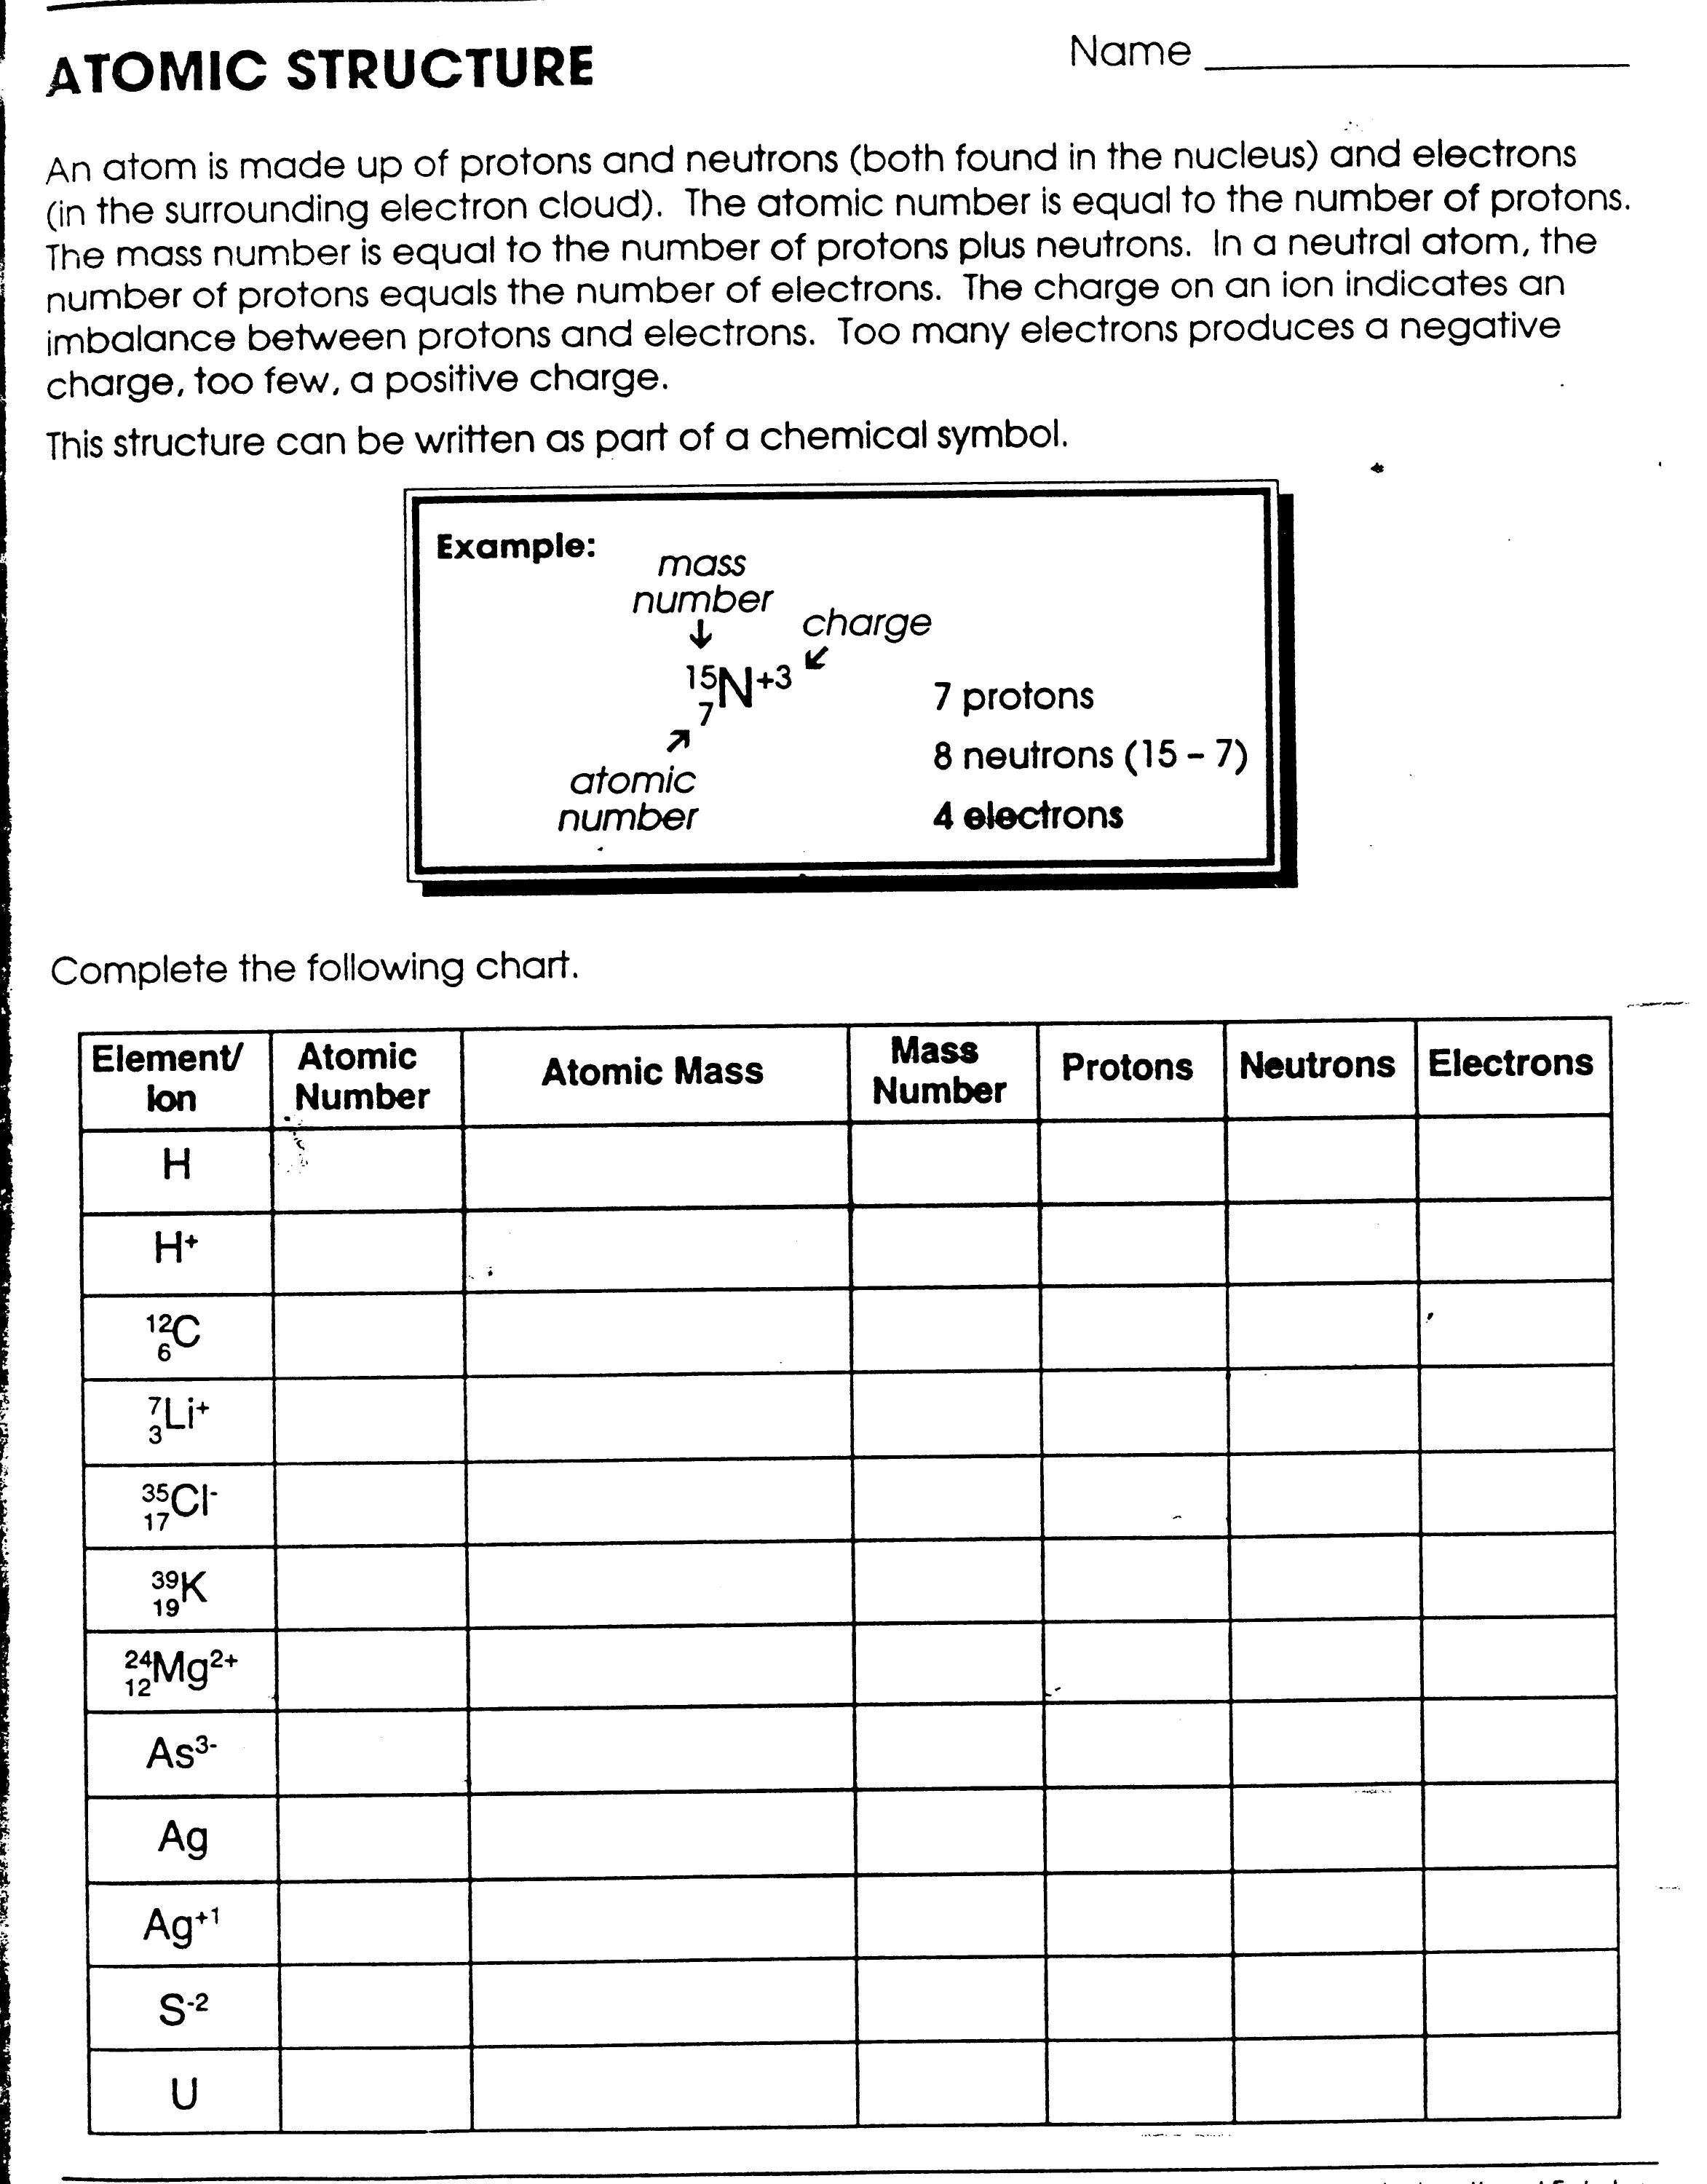 Worksheet Atomic Structure Answers 3 6